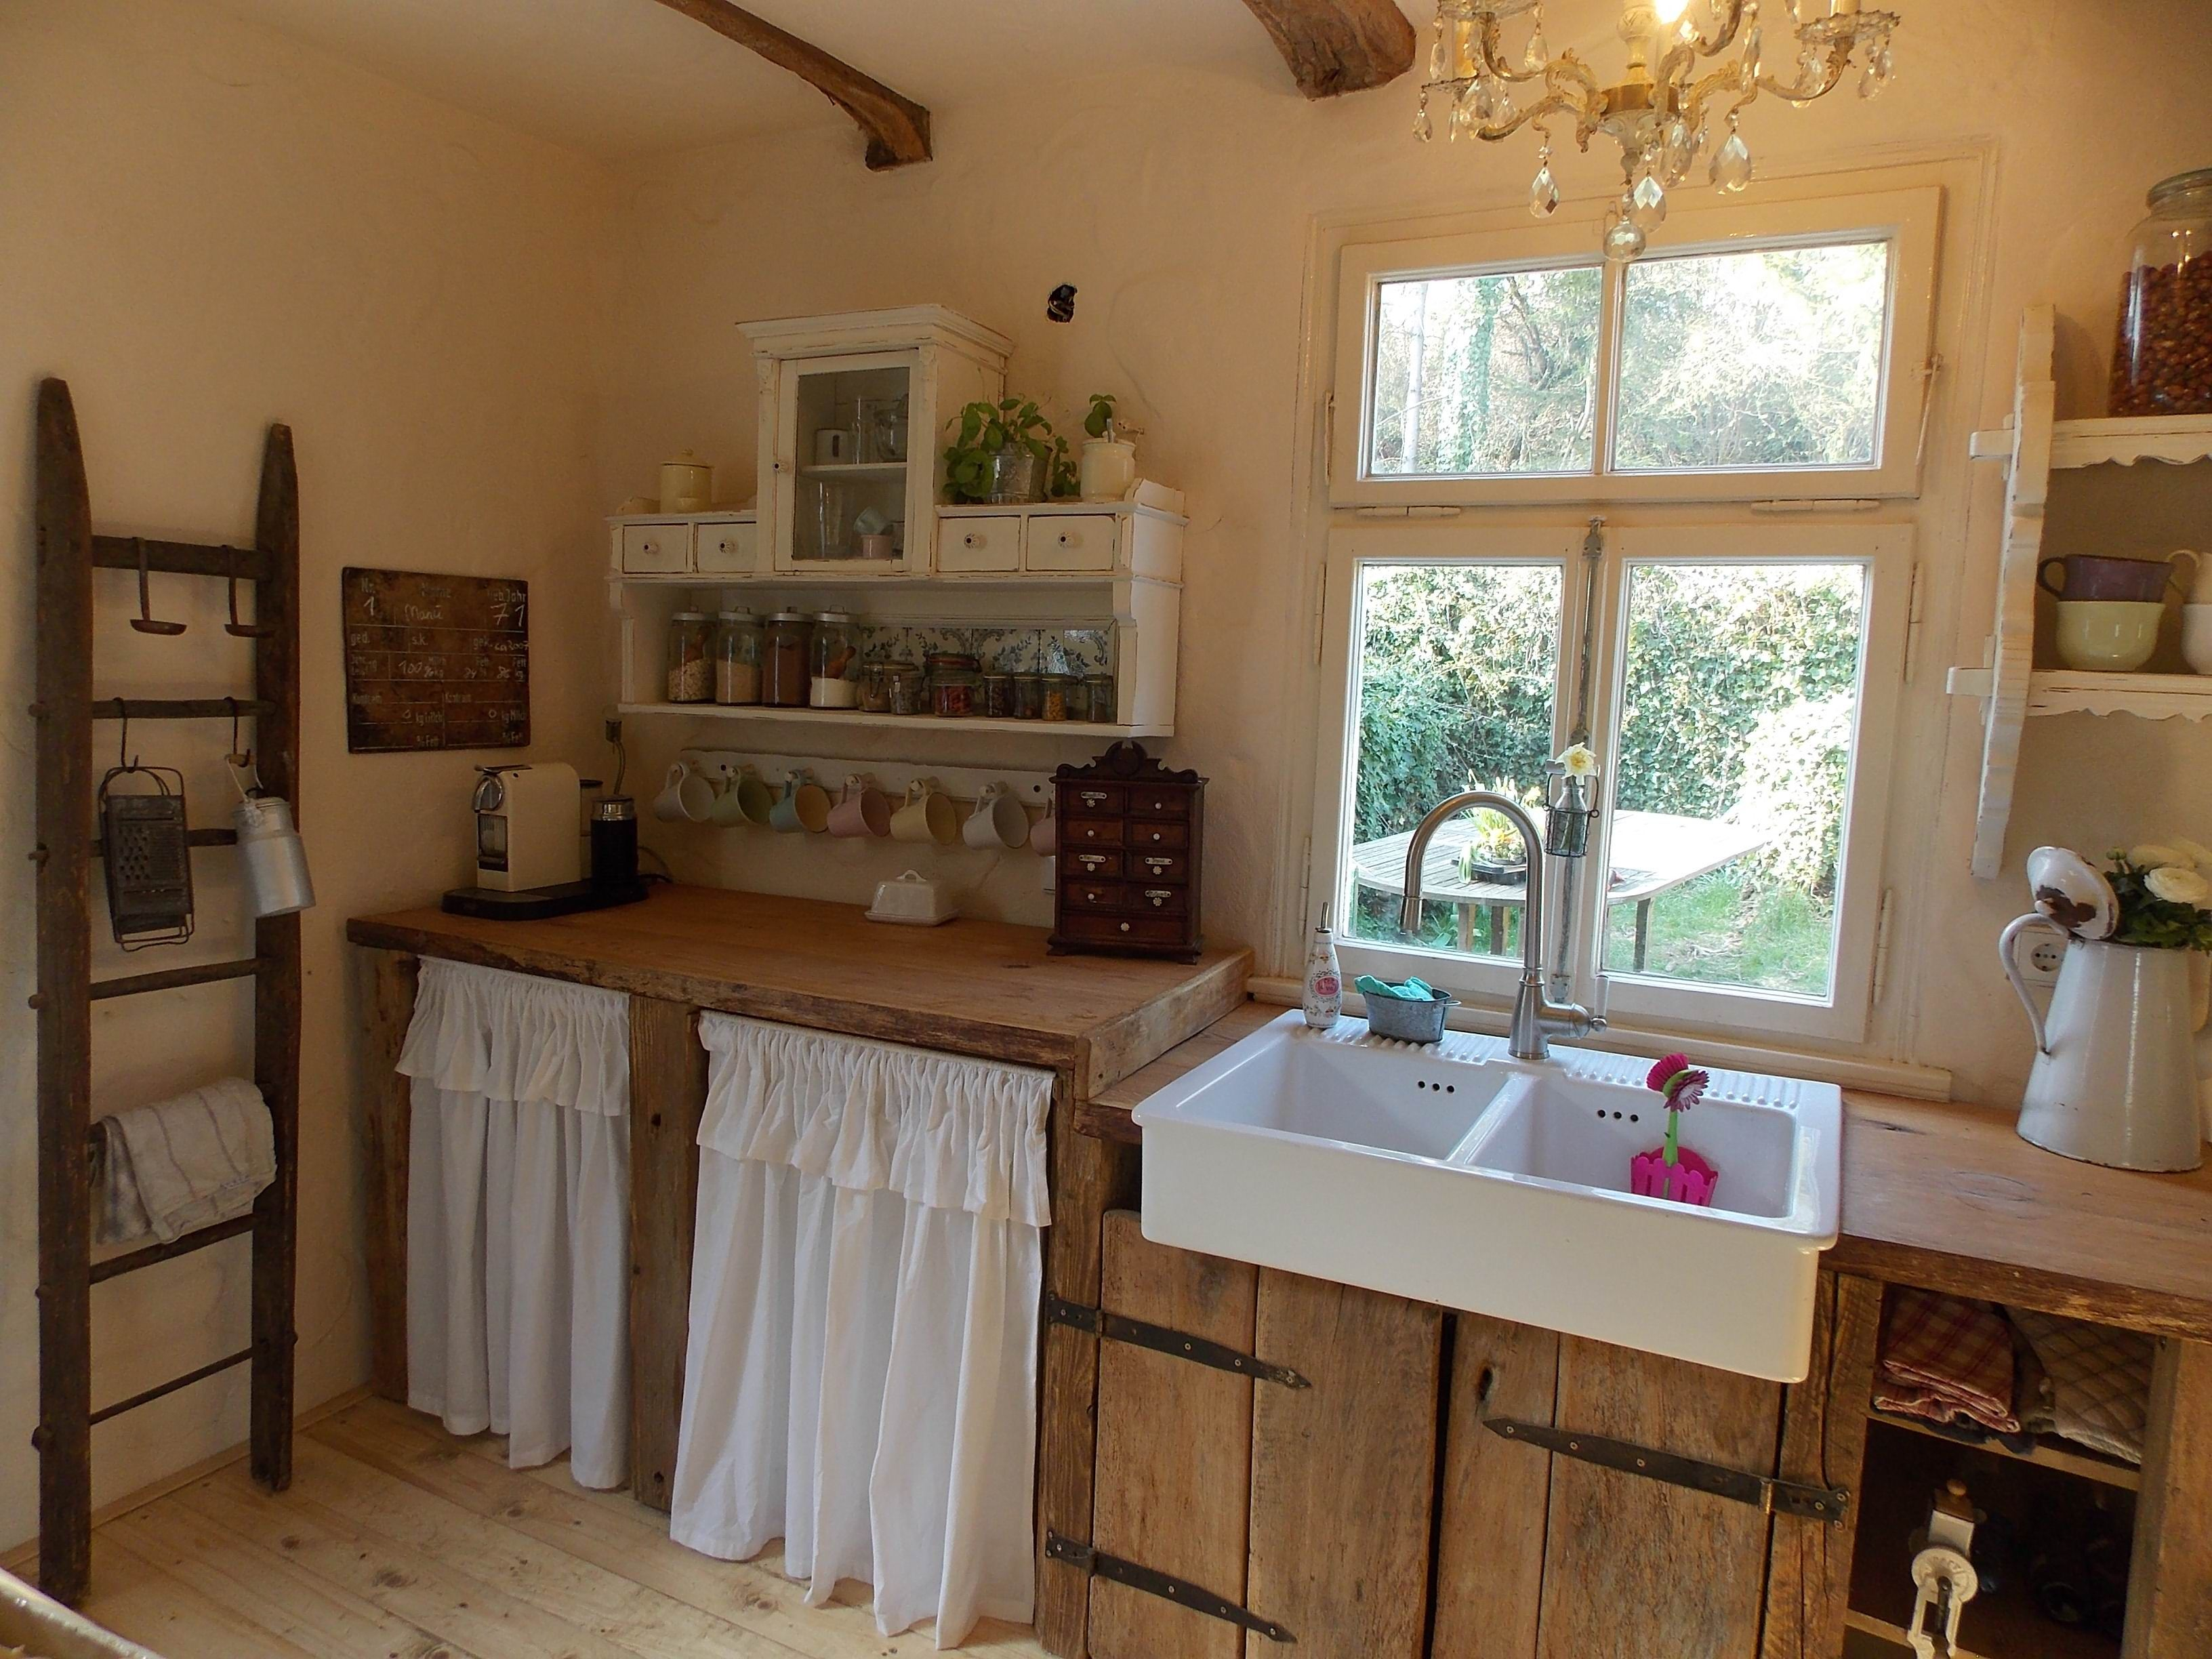 Farmhouse kitchen - Landhaus Küche - shabby chic - altes ...